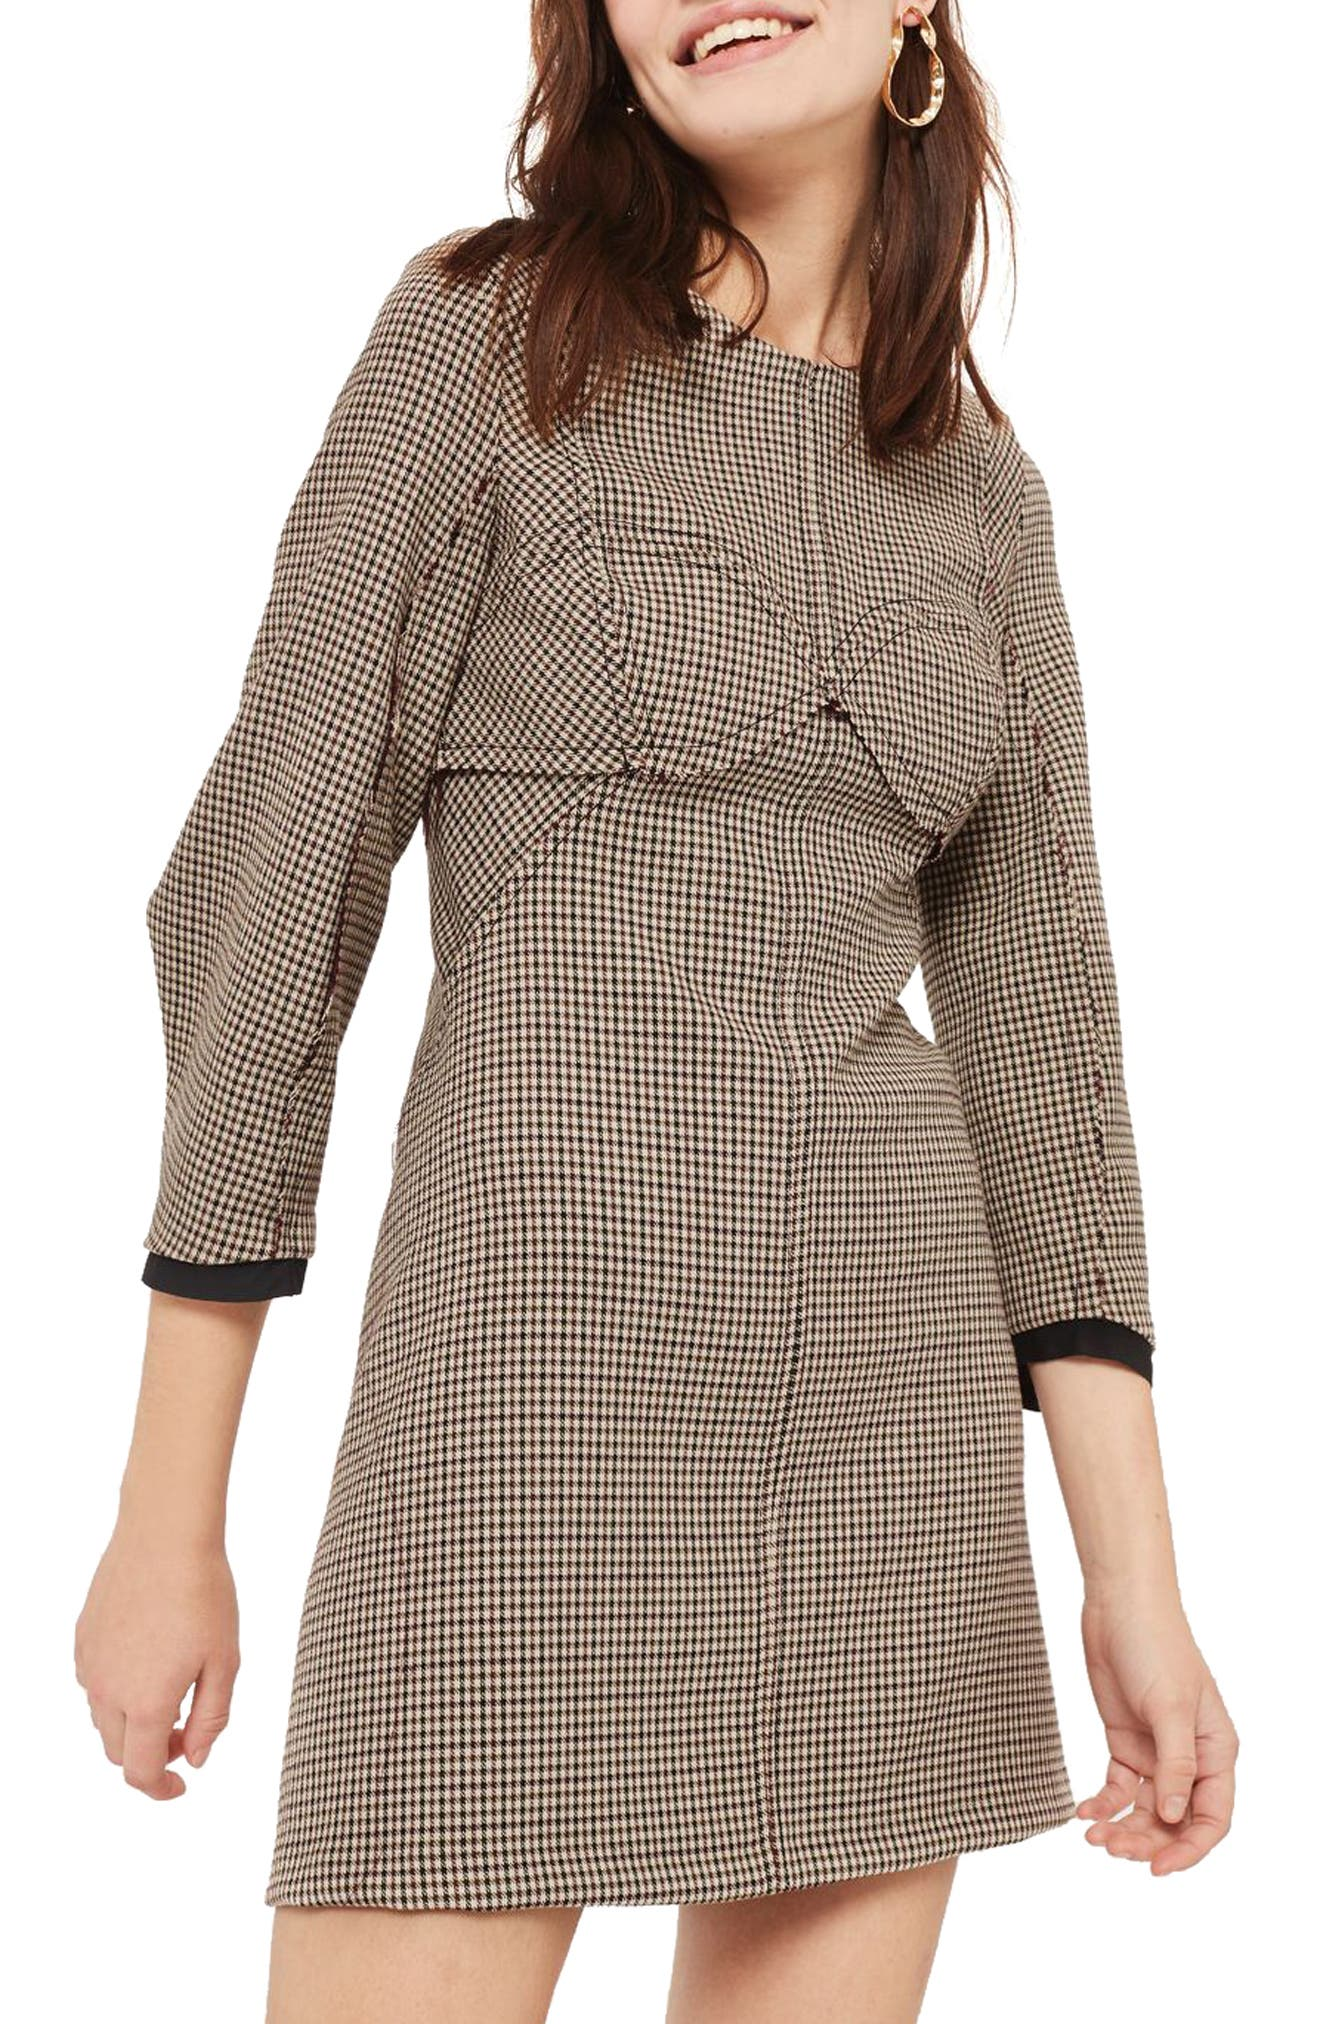 Topstitch Check Shift Dress,                             Main thumbnail 1, color,                             210